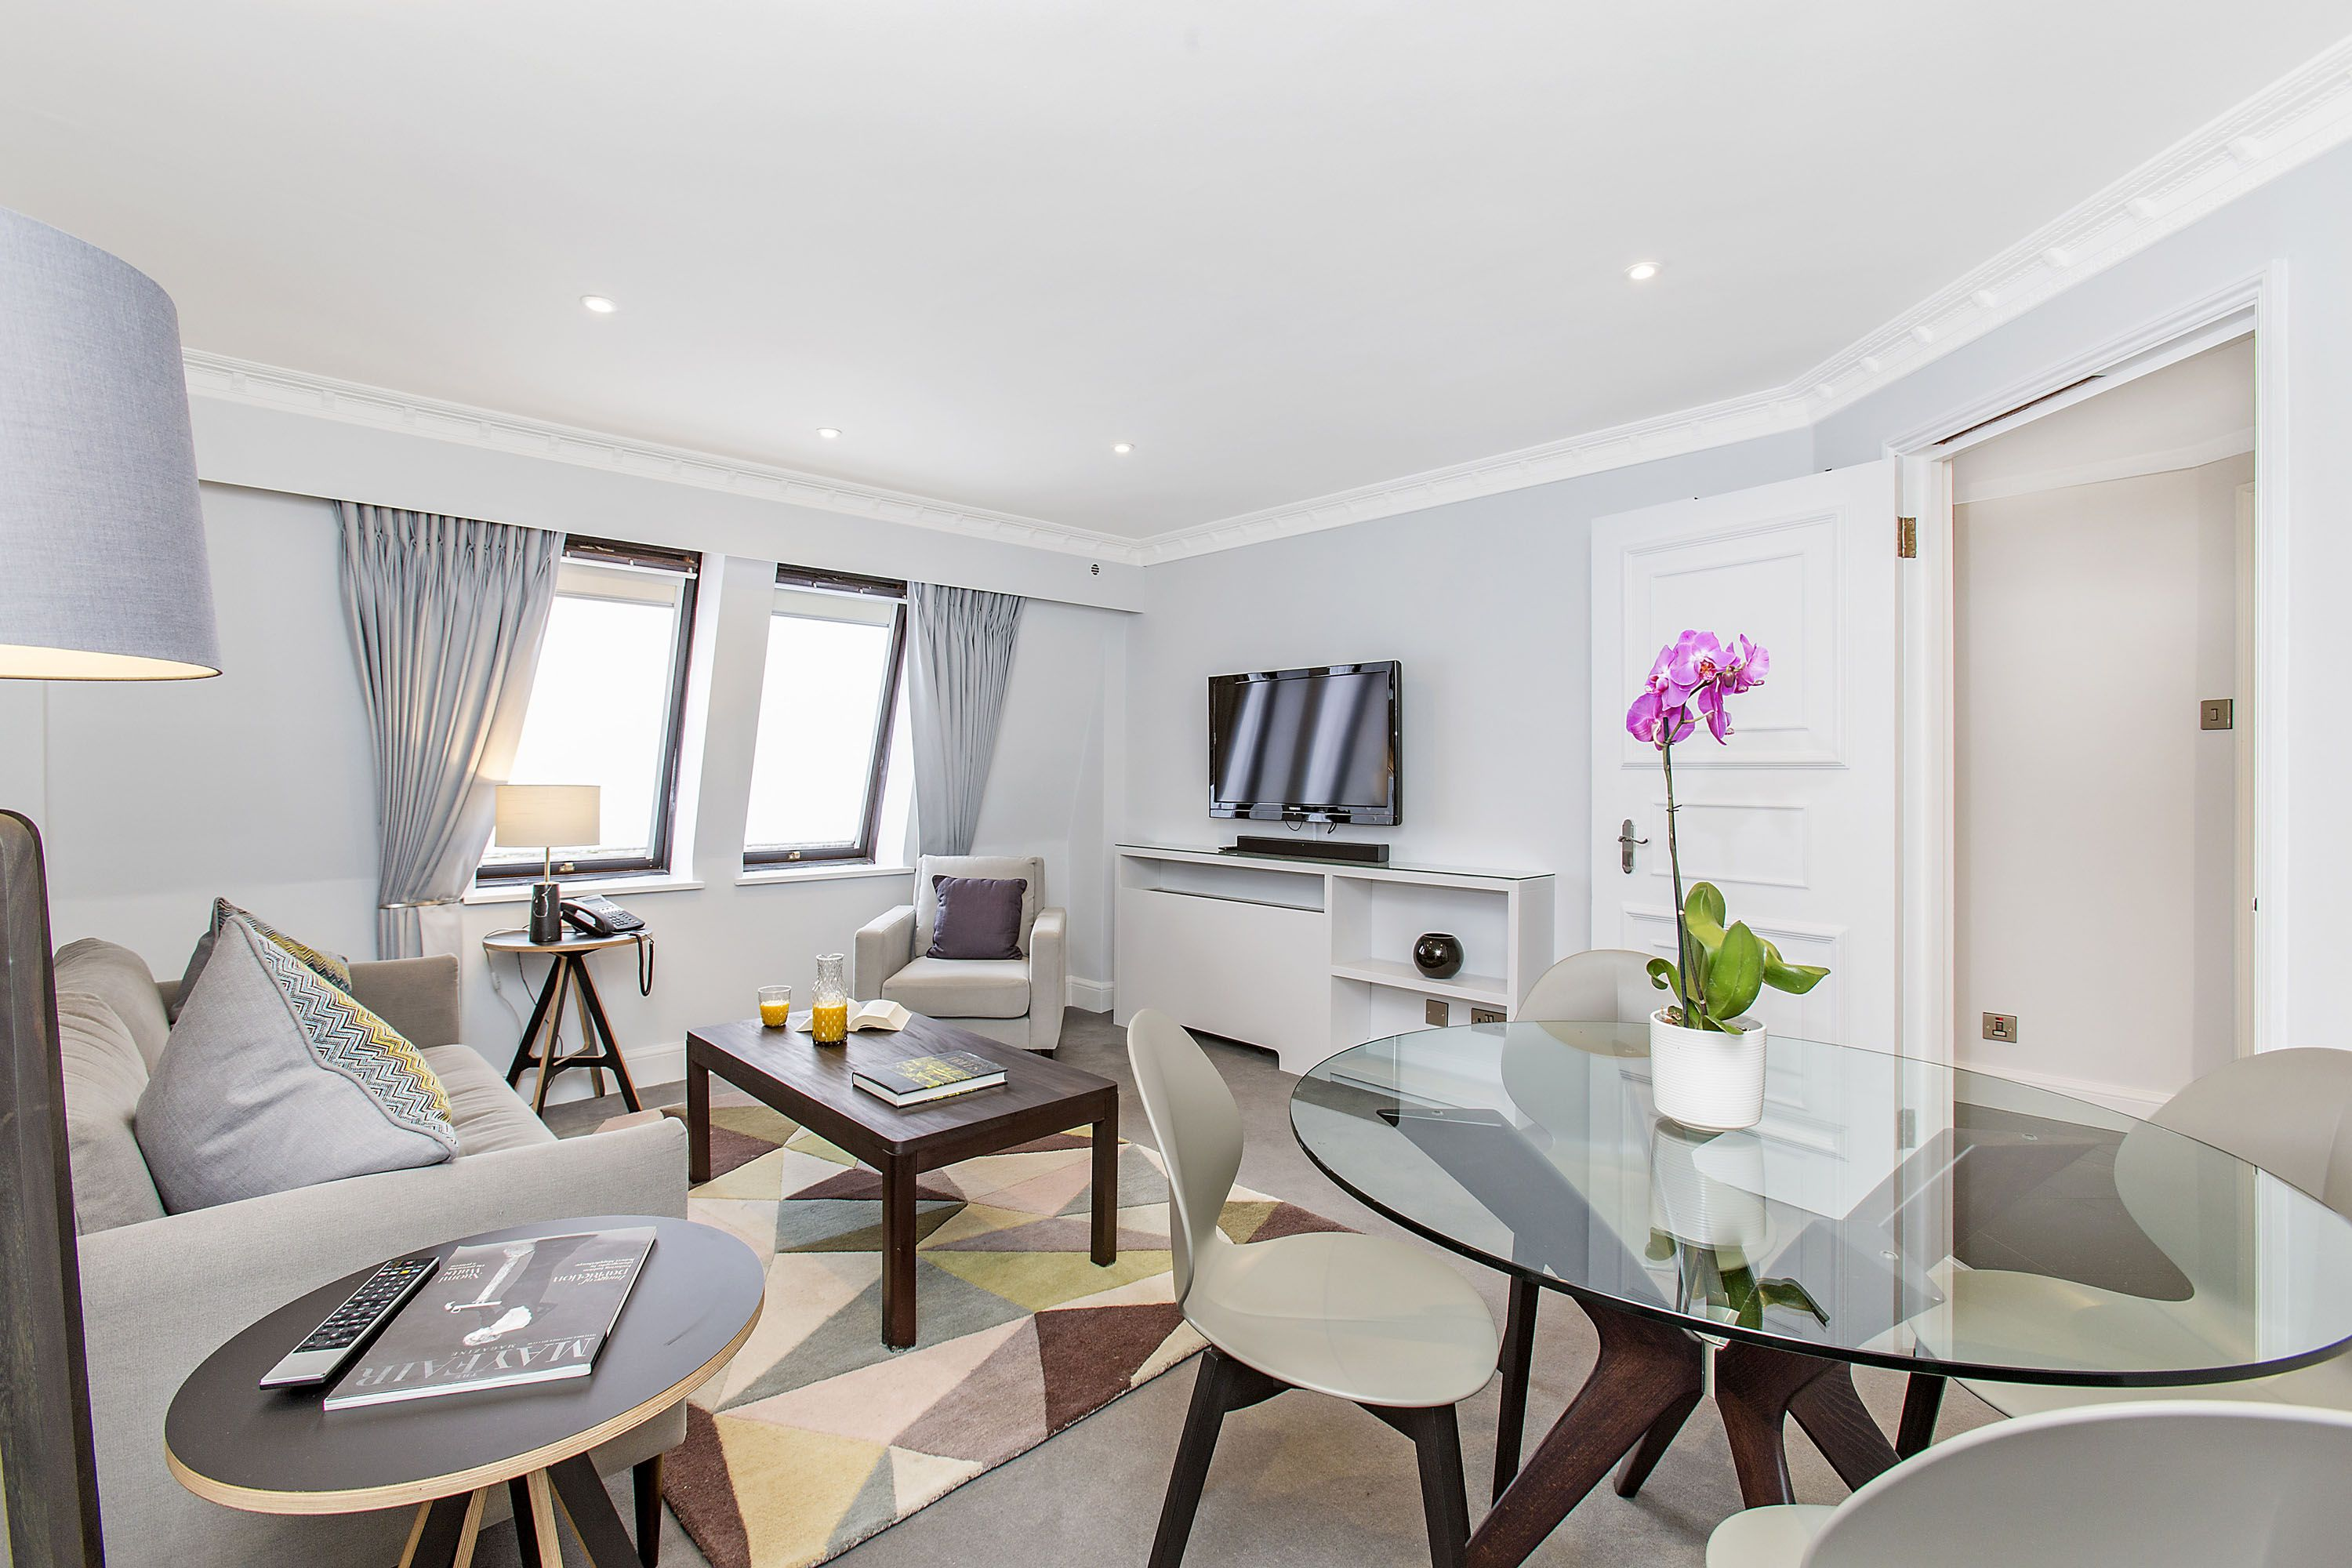 One Bedroom apartments located on the 4th Floor. The